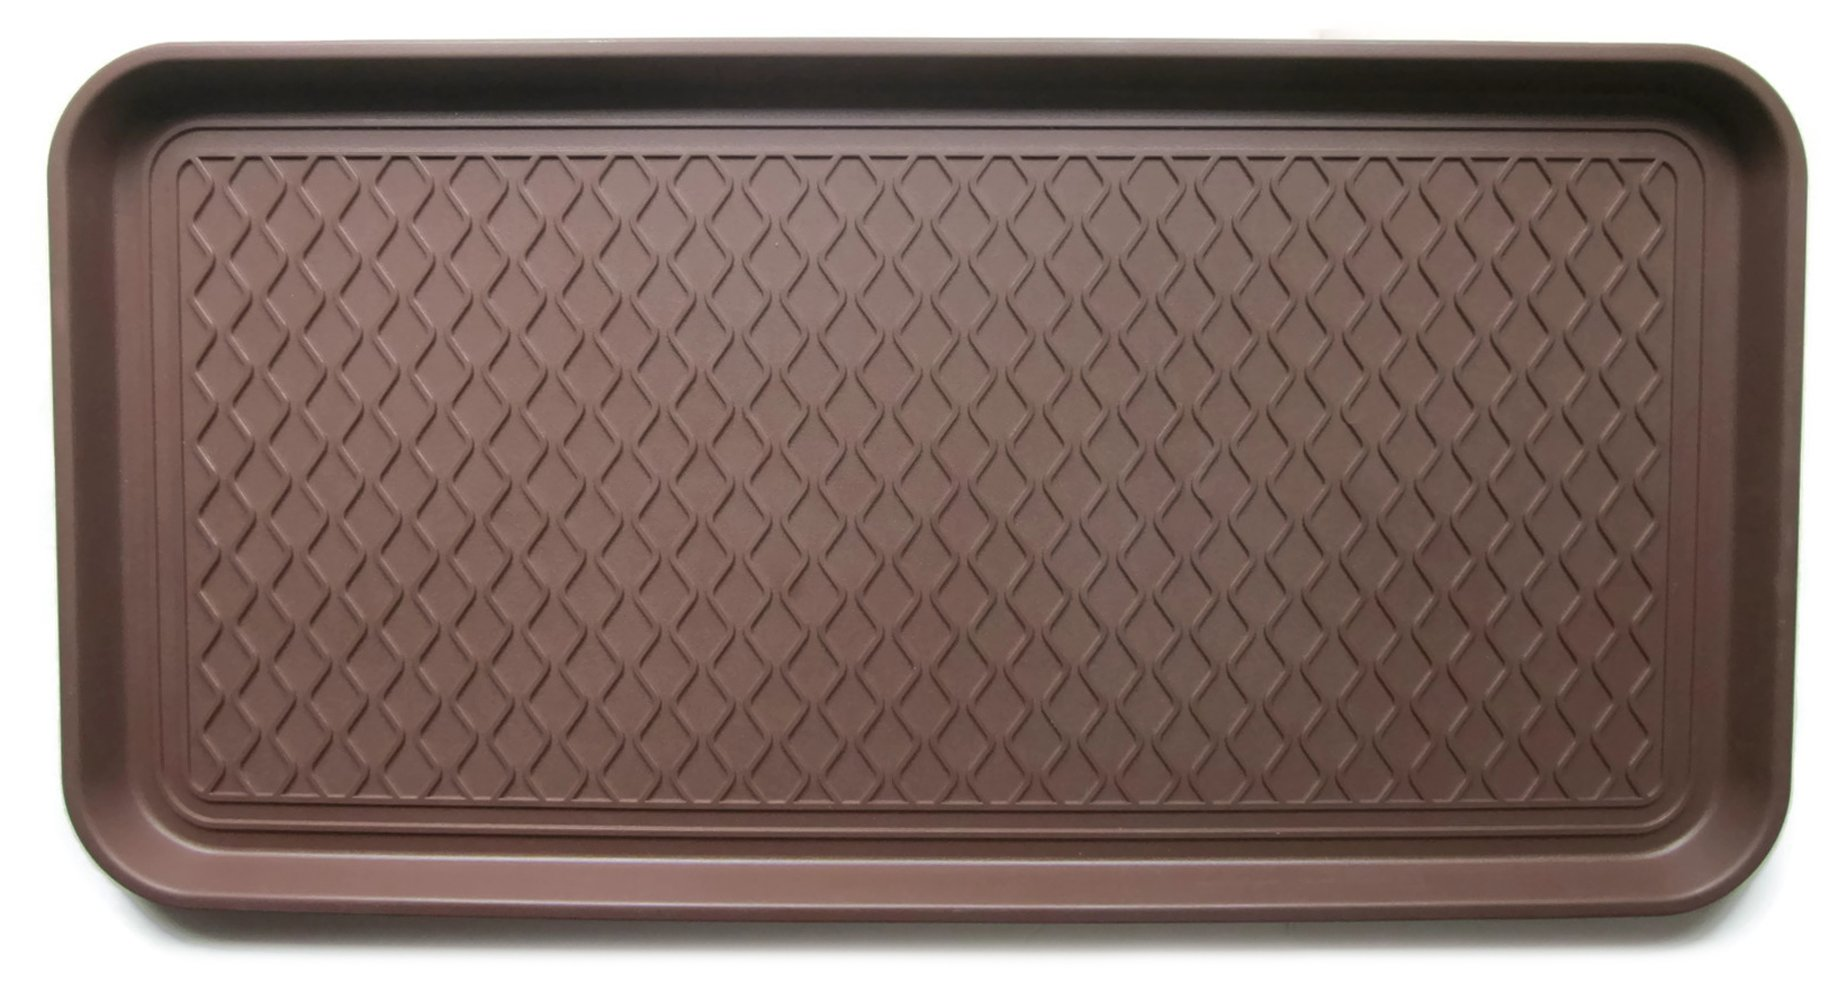 Multi-purpose Tray by Alex Carseon, for Boots, Shoes, Paint, Pets, and more. Anti-skid bottom. 30x15x1.2 inches - Brown by Alex Carseon